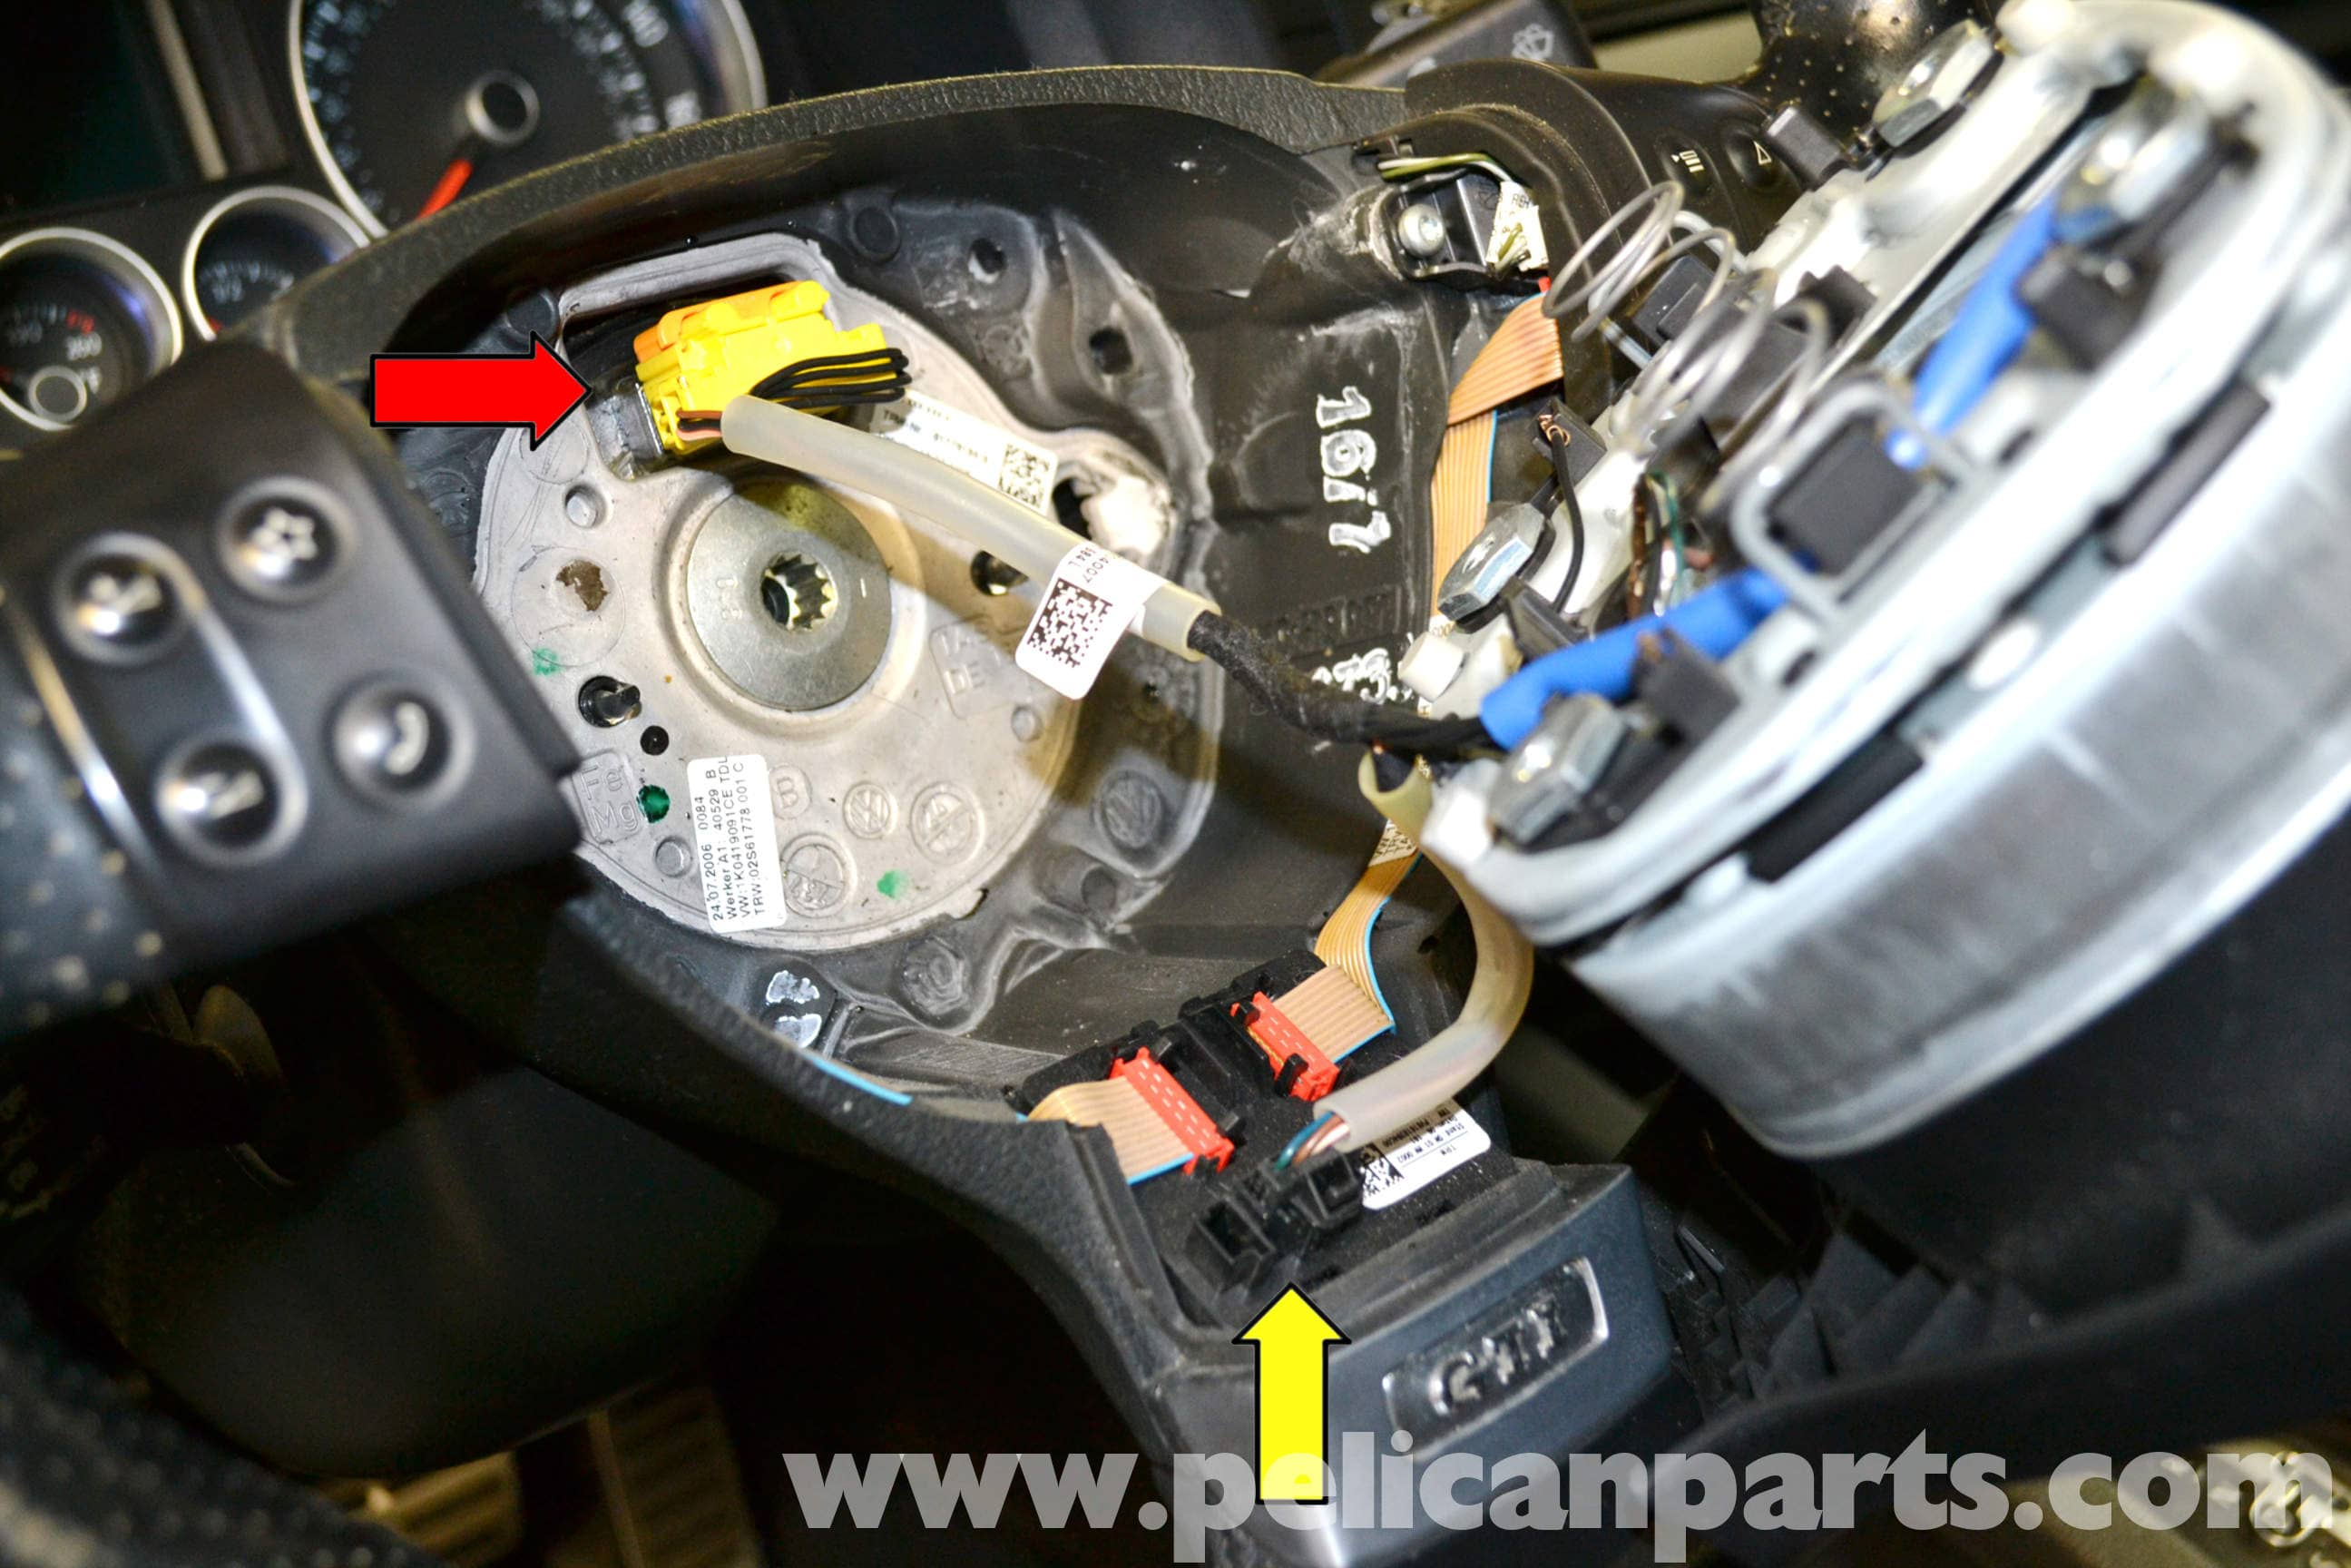 Volkswagen Golf Gti Mk V Steering Wheel And Air Bar Removal 2006 Jetta Airbag Wiring Diagram Large Image Extra